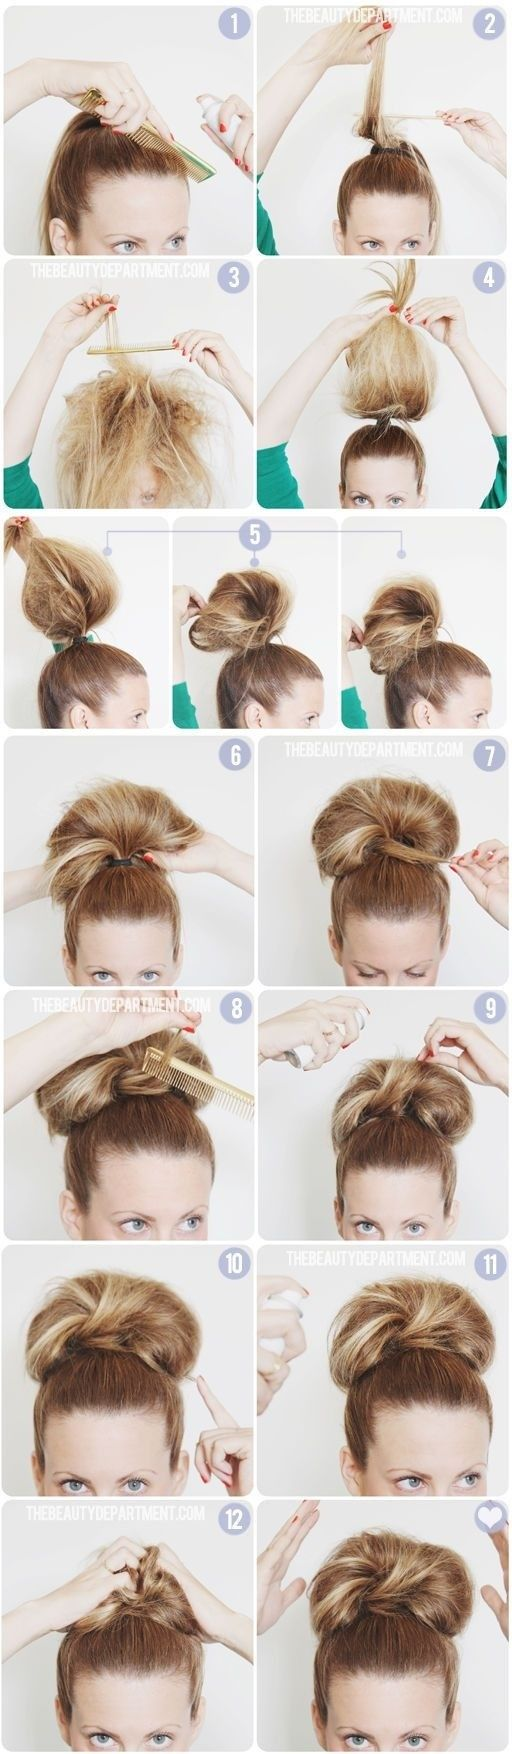 25 beautiful updo hairstyles tutorials ideas on pinterest 25 beautiful updo hairstyles tutorials ideas on pinterest simple updo hairstyles easy updo hairstyles and easy updo pmusecretfo Gallery